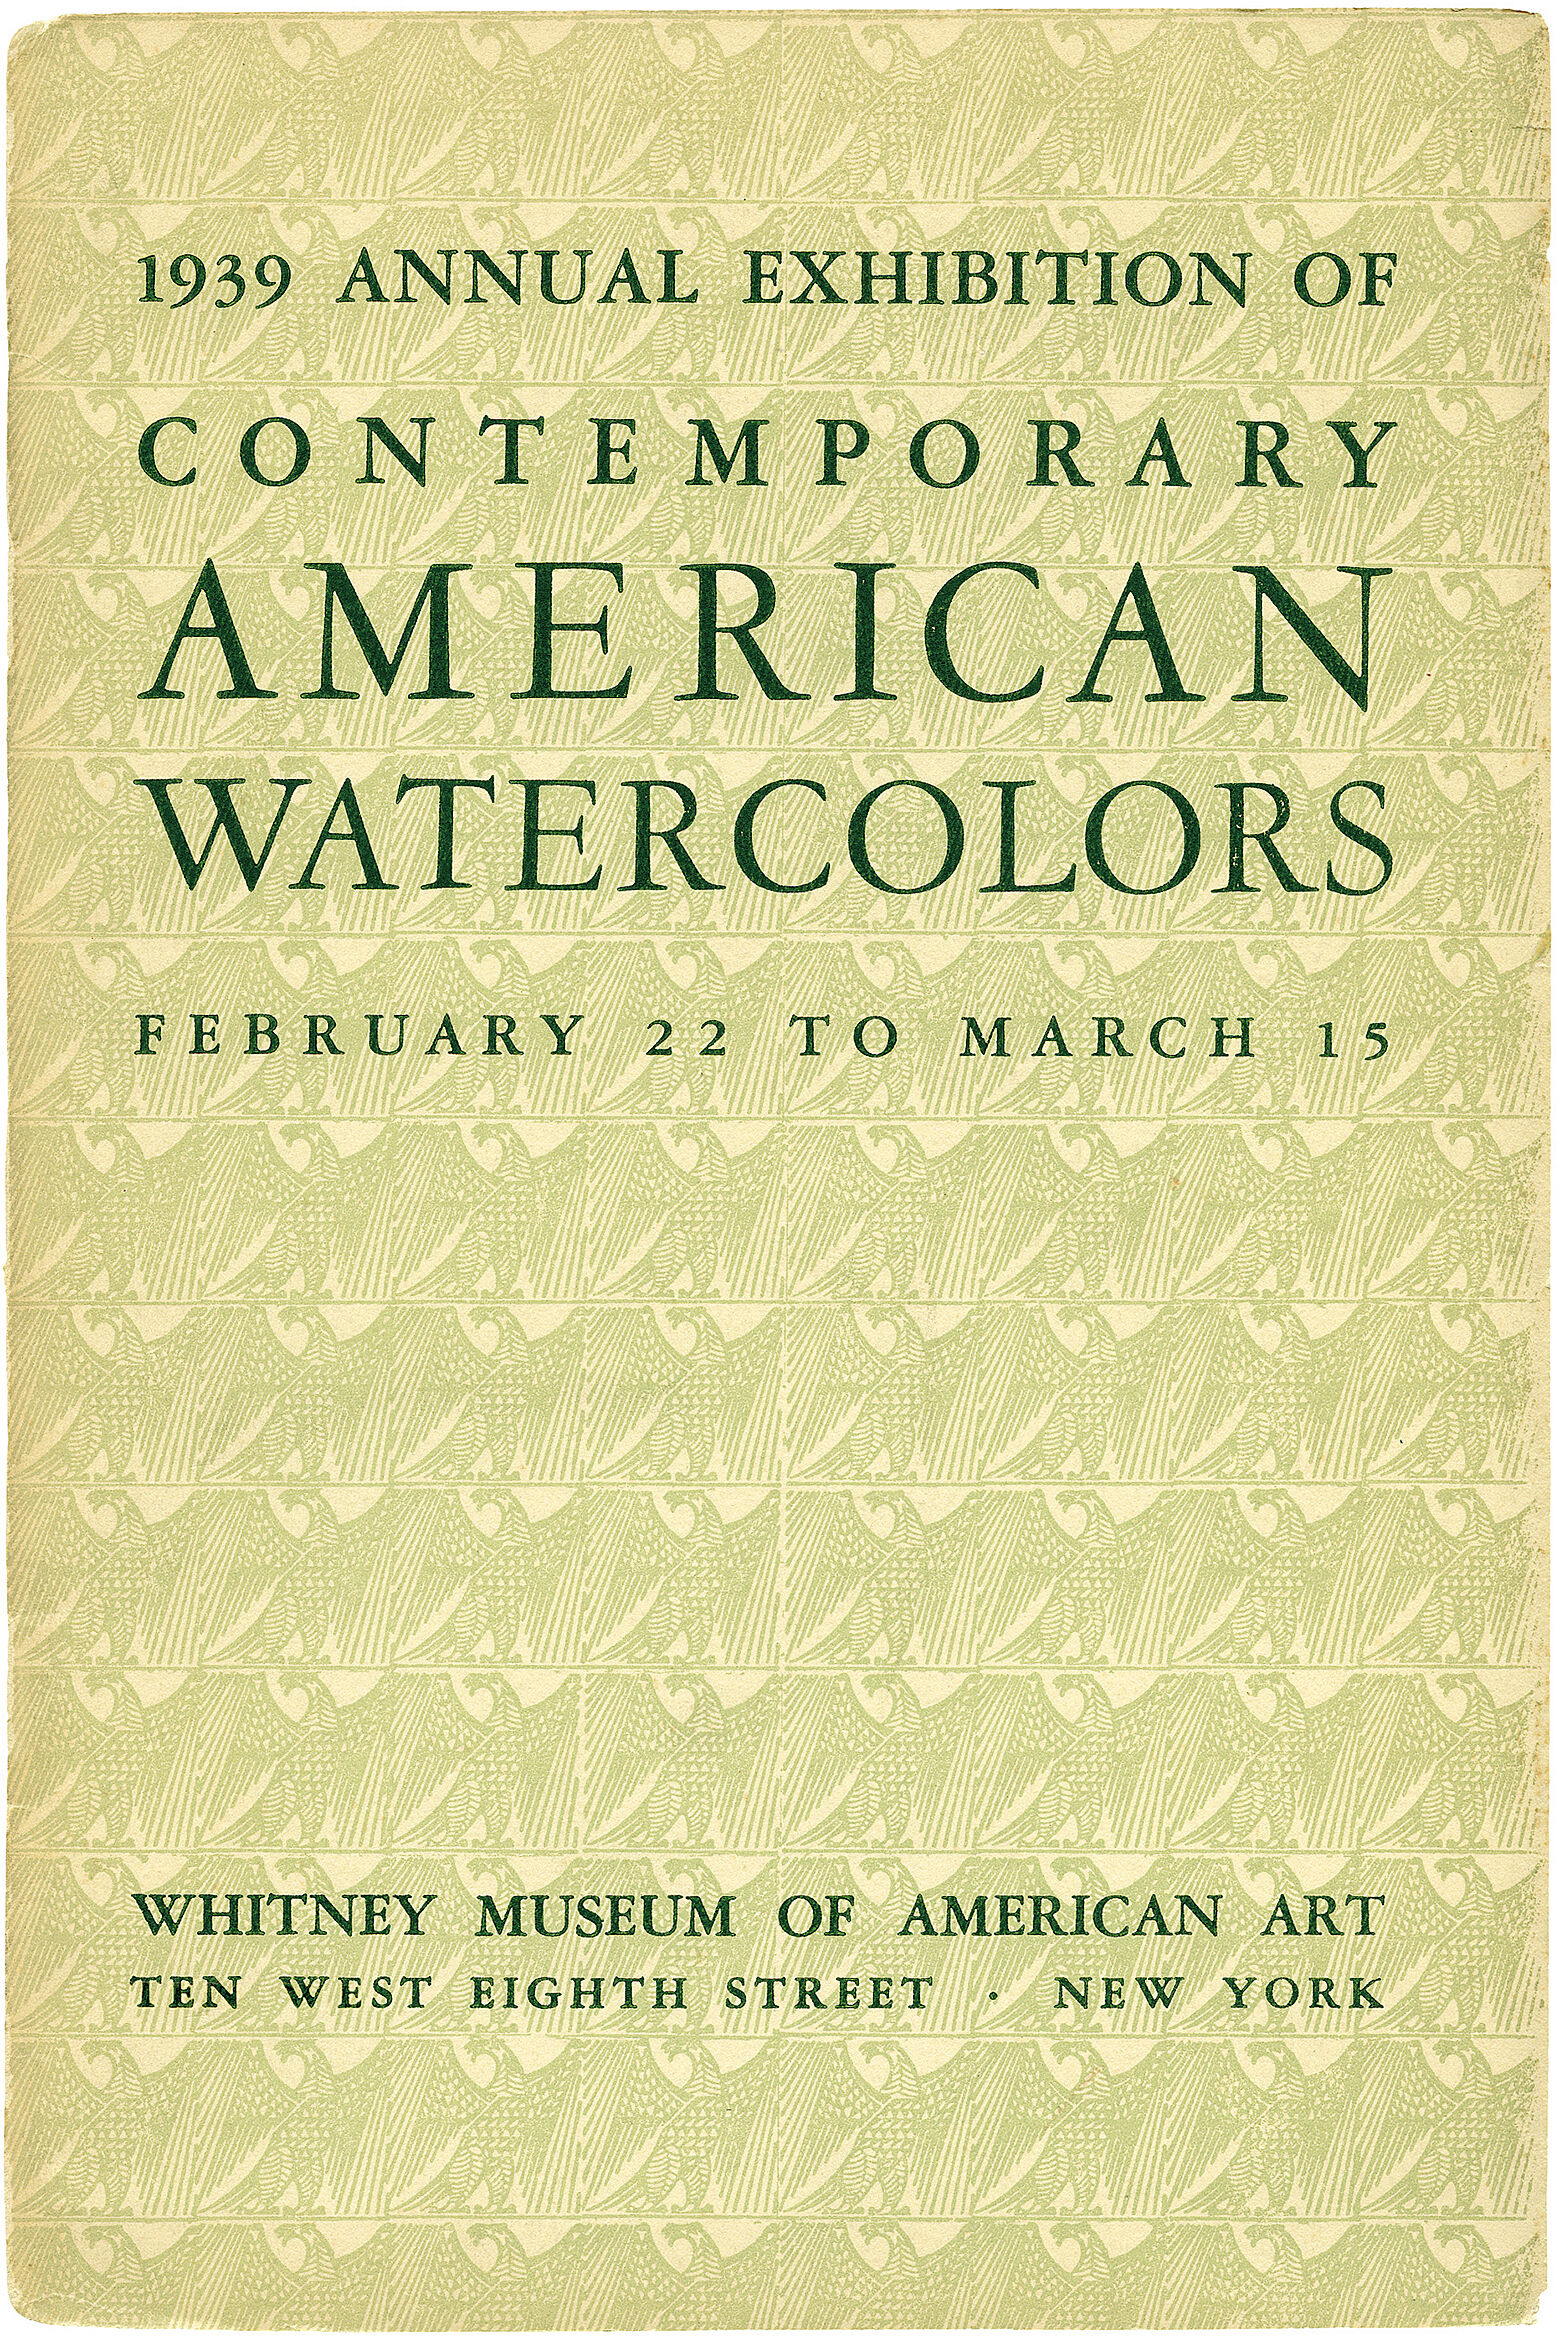 Cover for 1939 Annual Exhibition of Contemporary American Watercolors catalogue